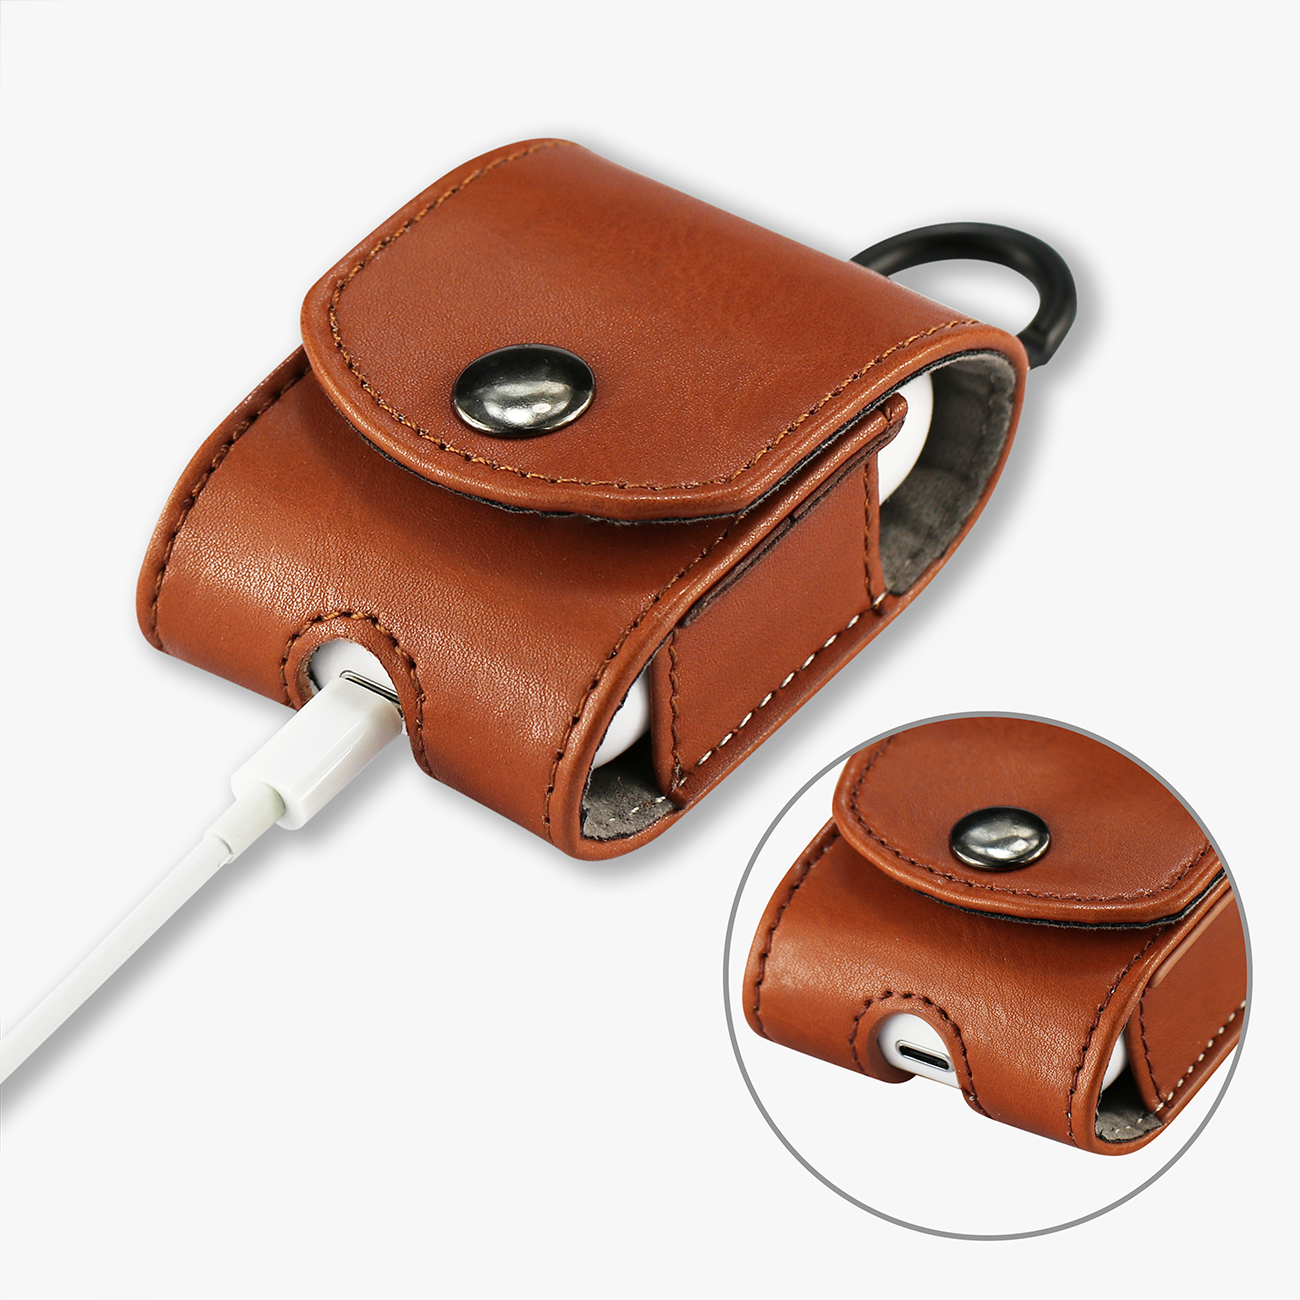 Reiko leather Case for Airpod in Brown